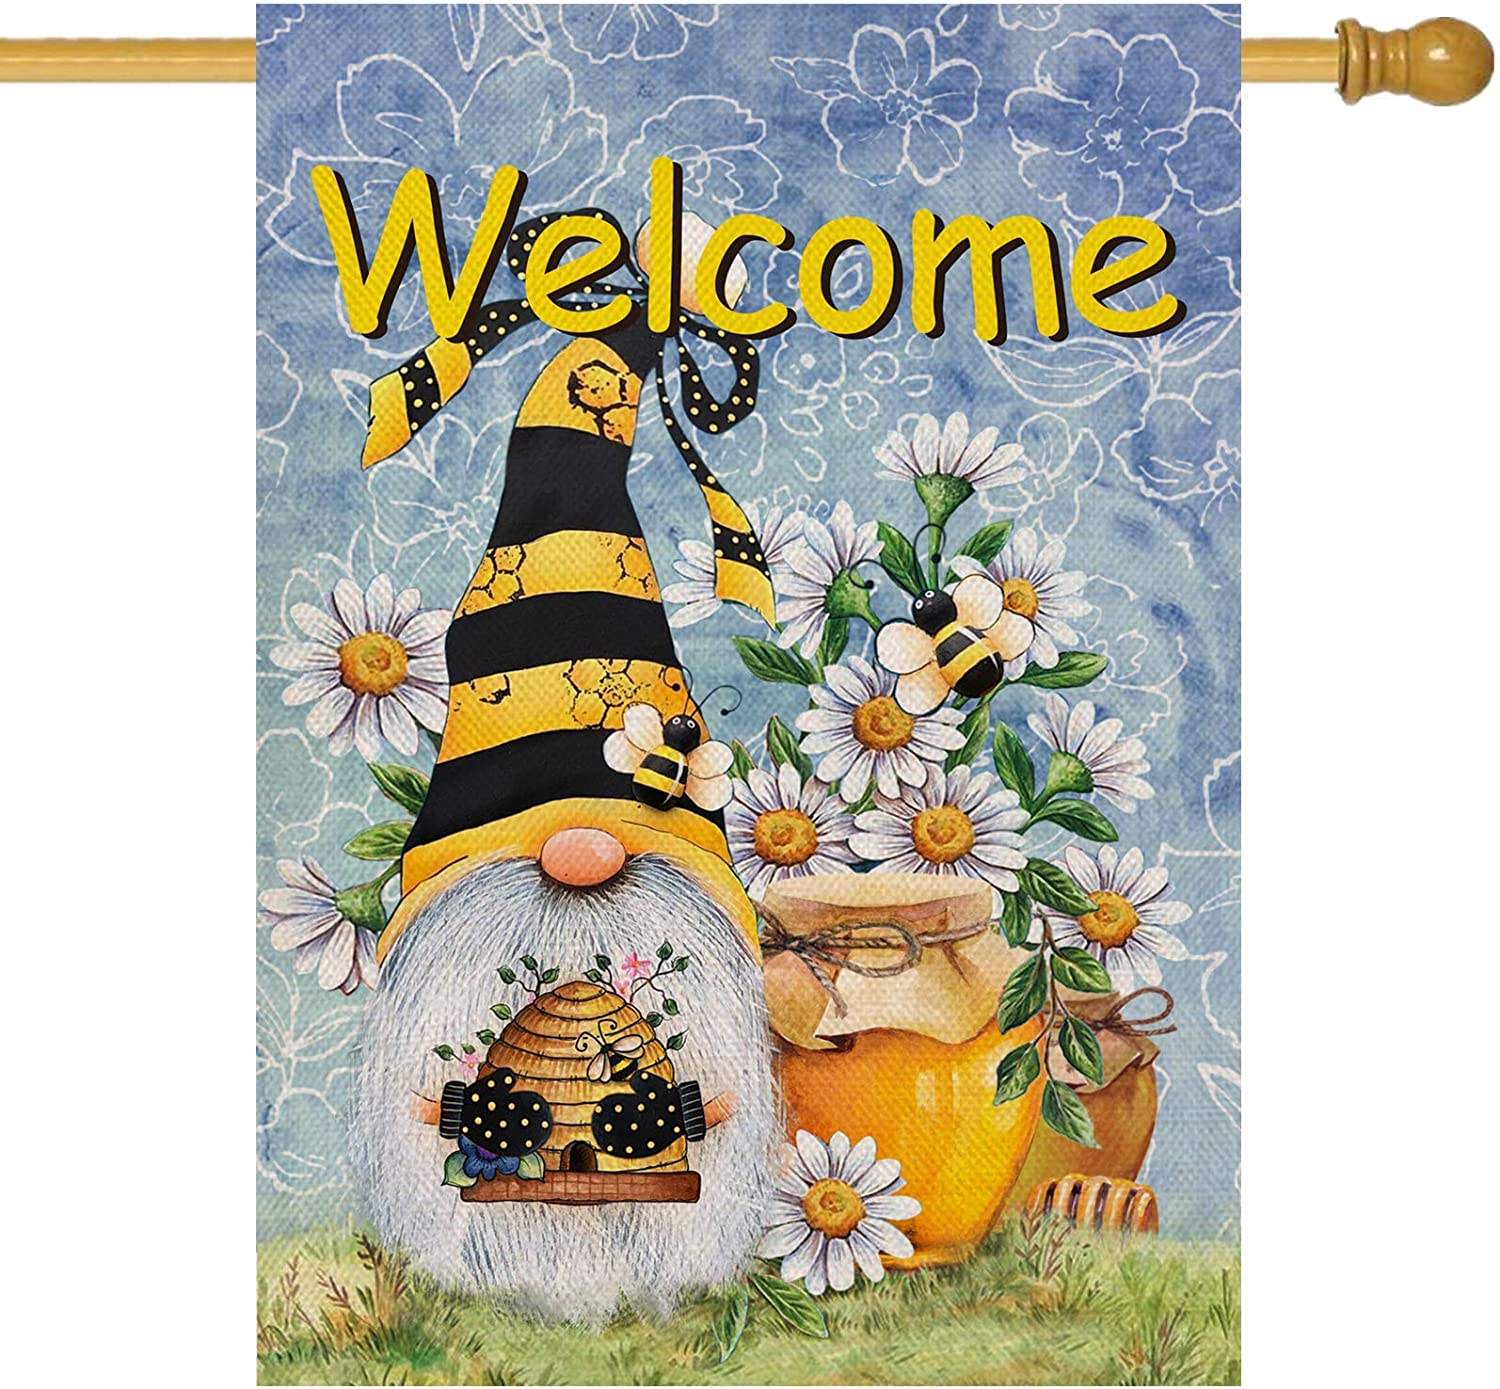 Furiaz Welcome Honey Bee Gnome House Flag, Spring Summer Garden Yard Outdoor Home Decorative Large Flag, Lawn Outside Daisy Flower Decorations Seasonal Farmhouse Burlap Decor Double Sided 28 x 40